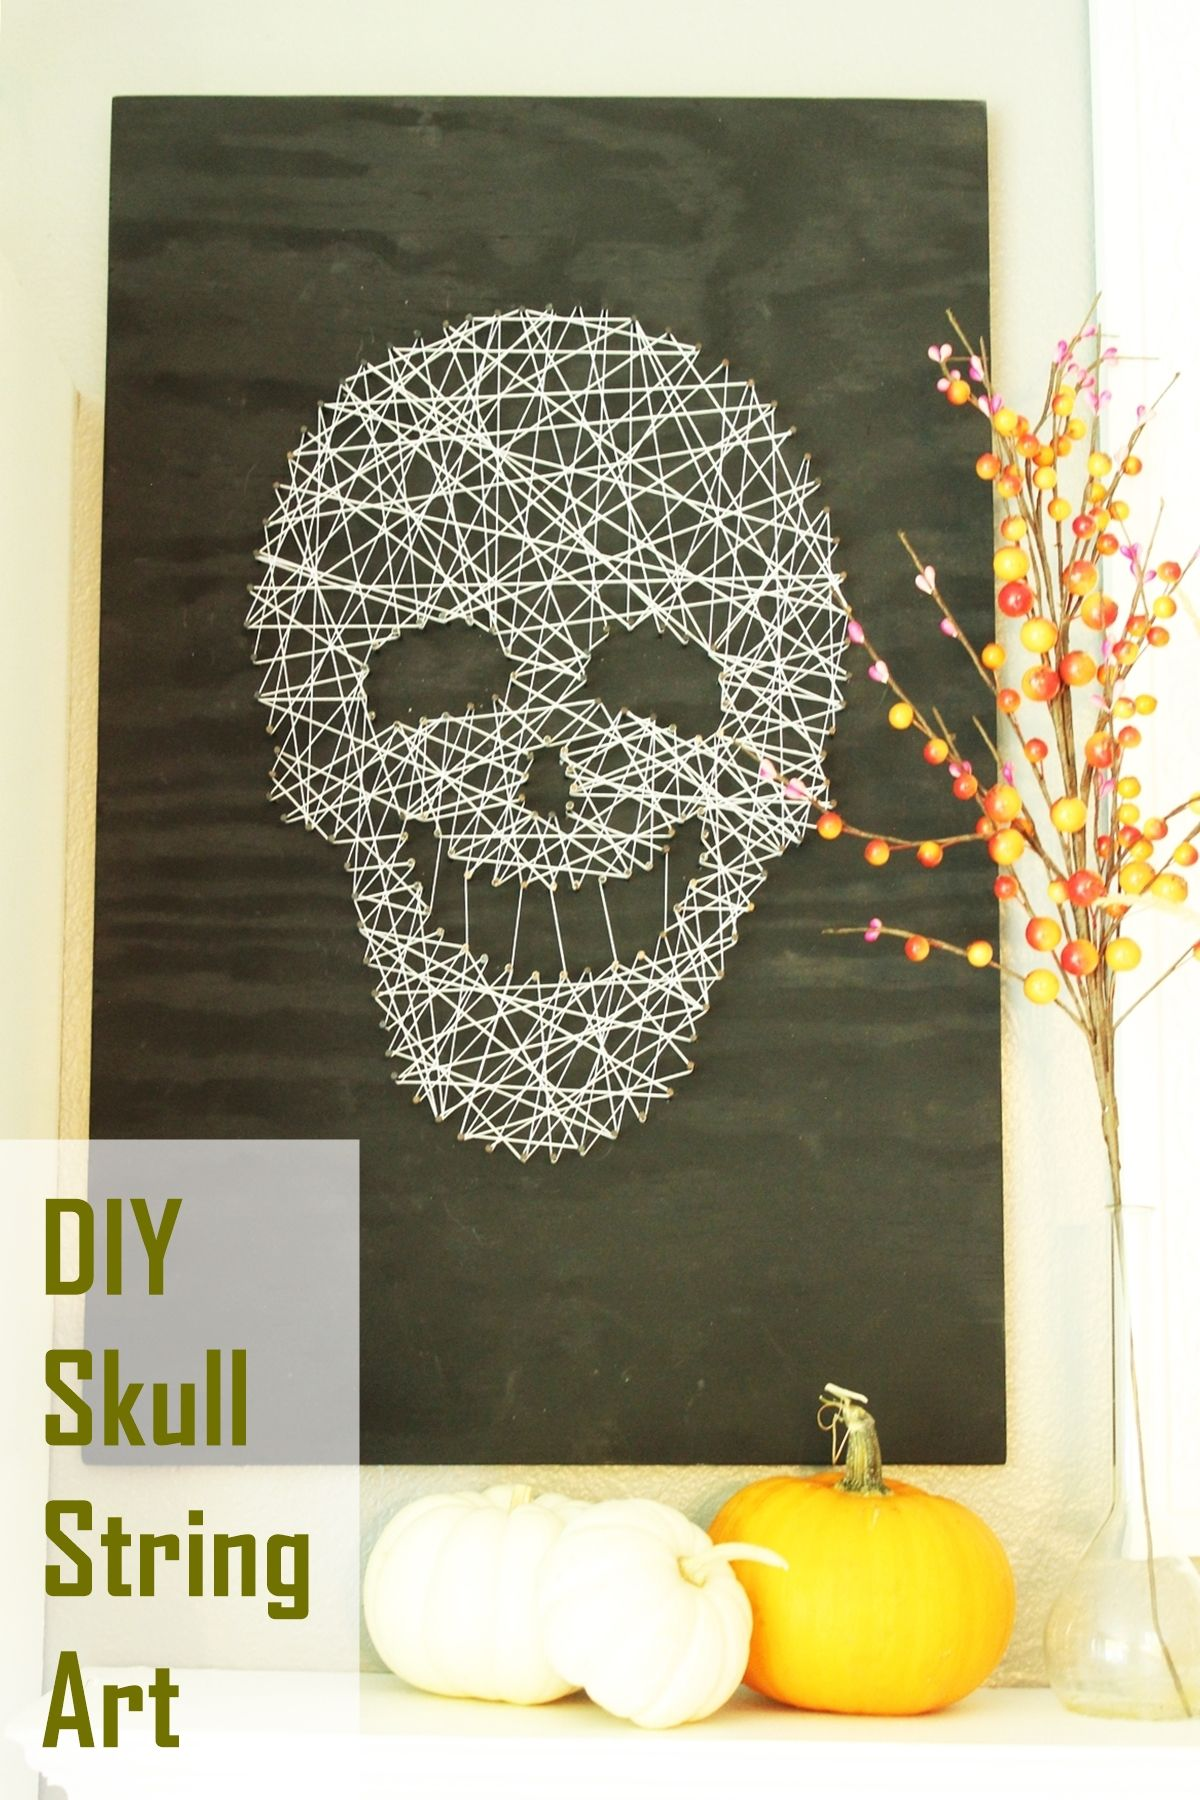 1570526989 888 start the spooky season in style with some amazing skull crafts - Start The Spooky Season In Style With Some Amazing Skull Crafts